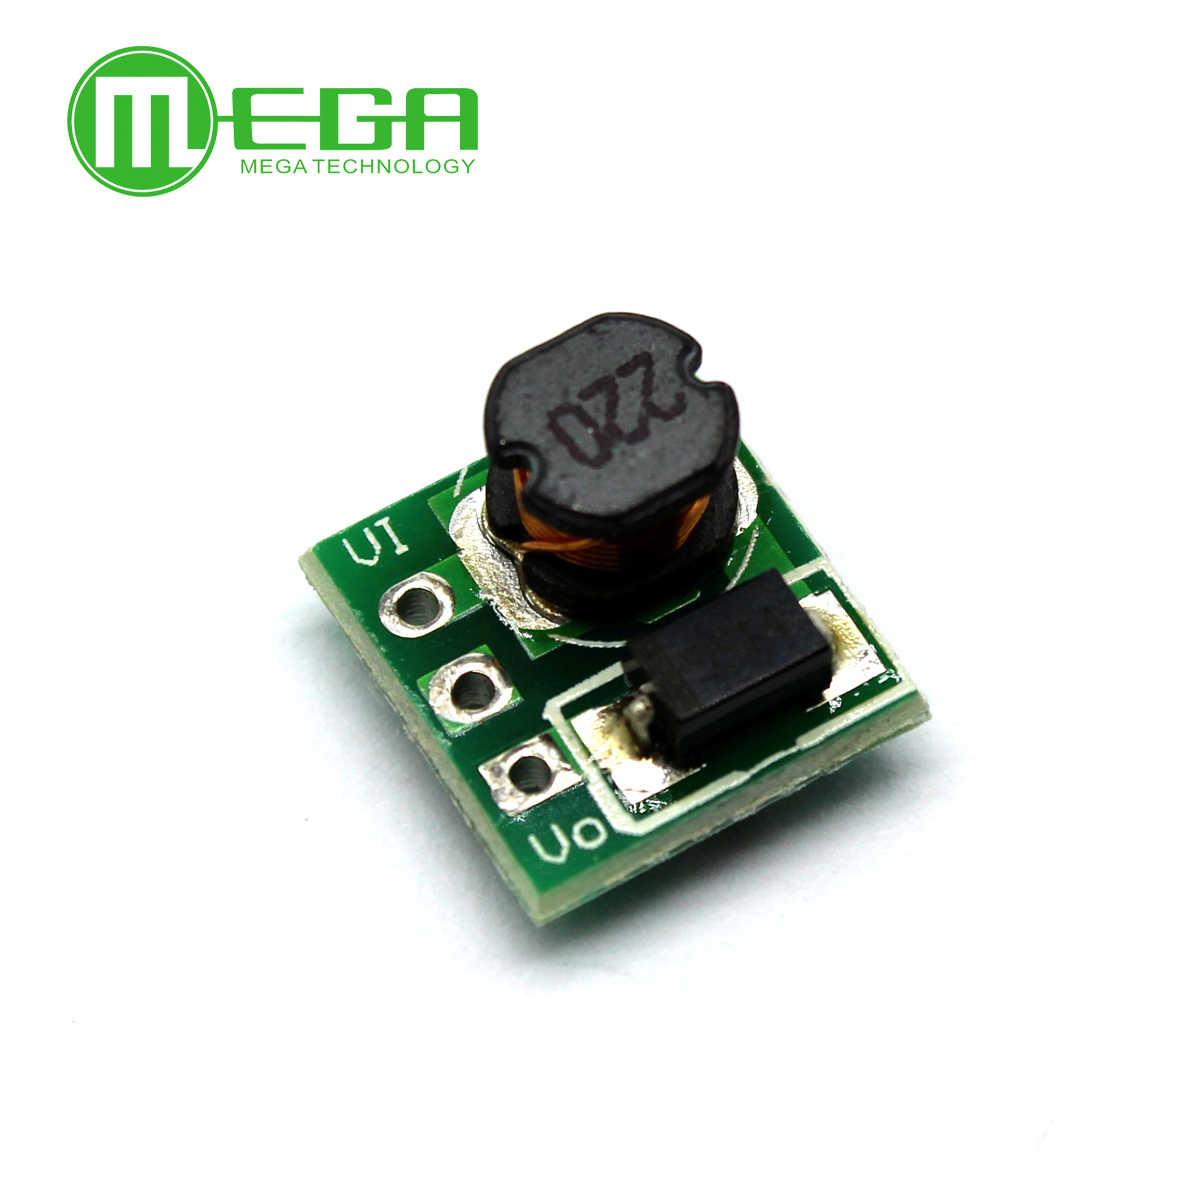 5 Pcs Dc Dc 1.8V 2.5V 3V 3.3V 3.7V Naar 5V Step Up Power supply Voltage Boost Converter Board Module Regulator 18650 Li-Op Batery